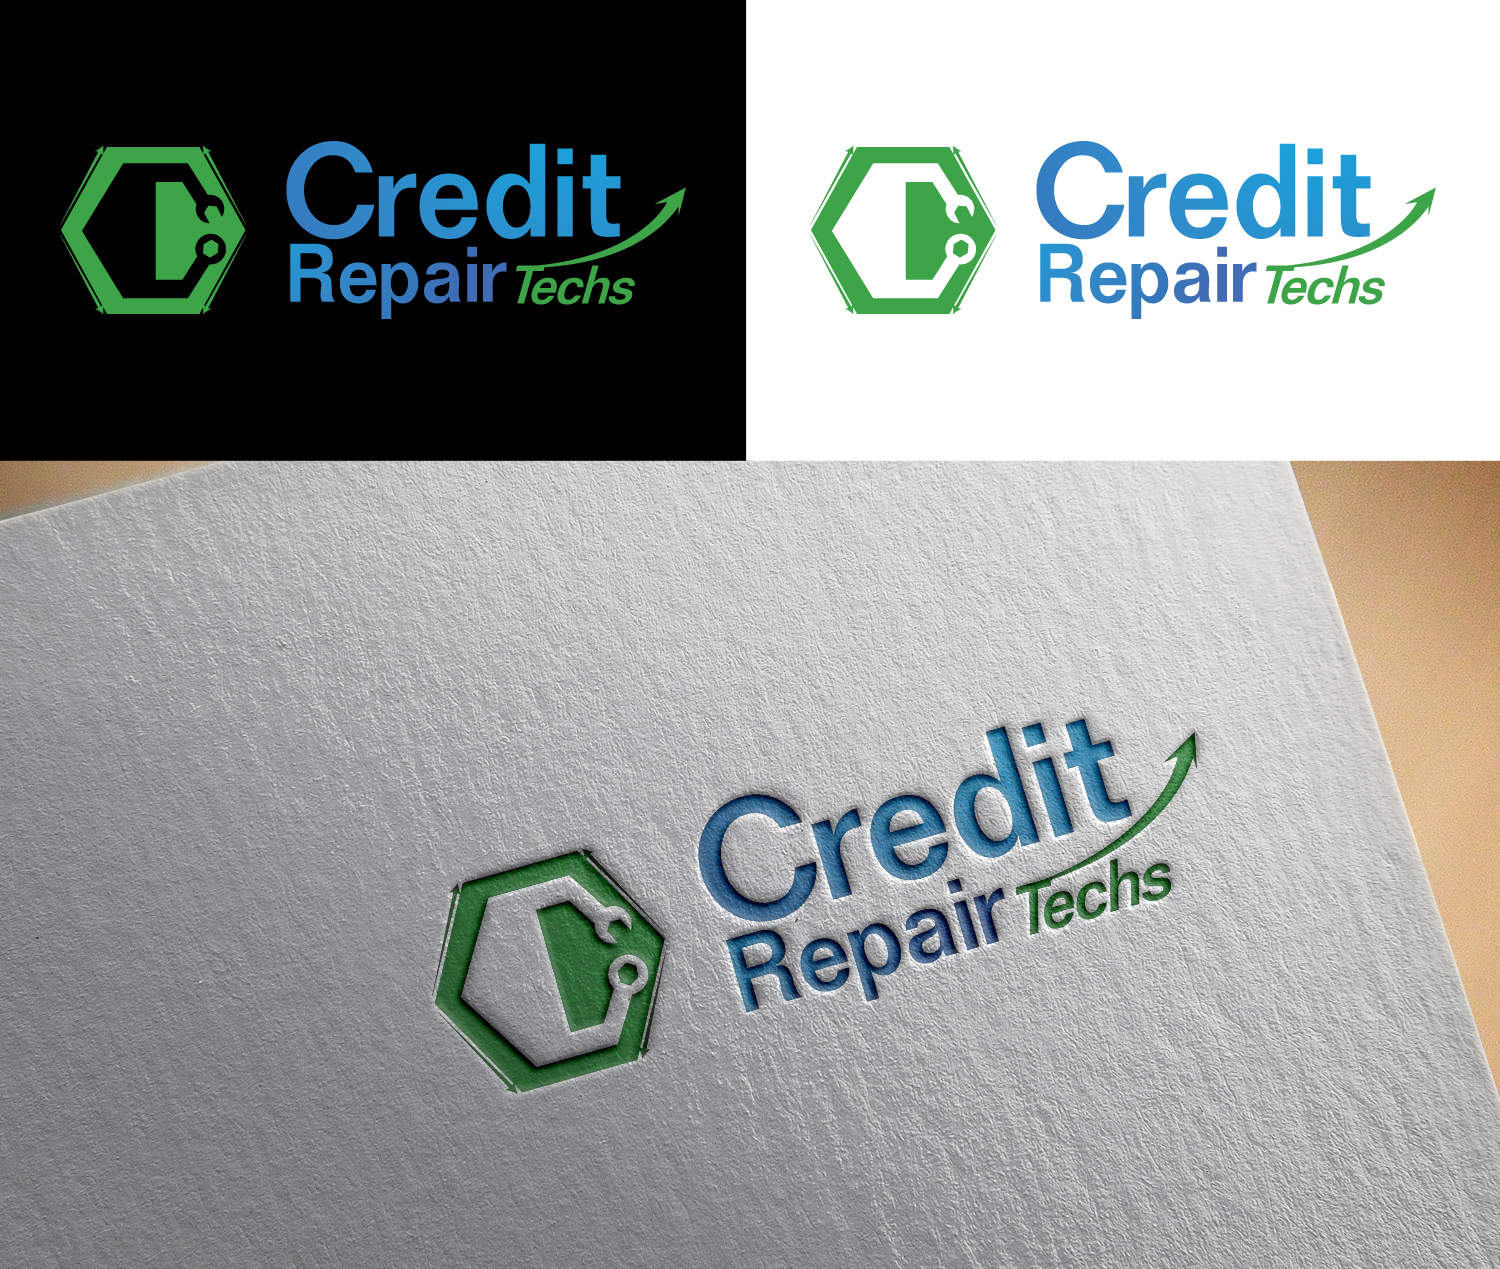 Elegant Playful Business Logo Design For Credit Repair Techs By Artdot06 Design 12658436